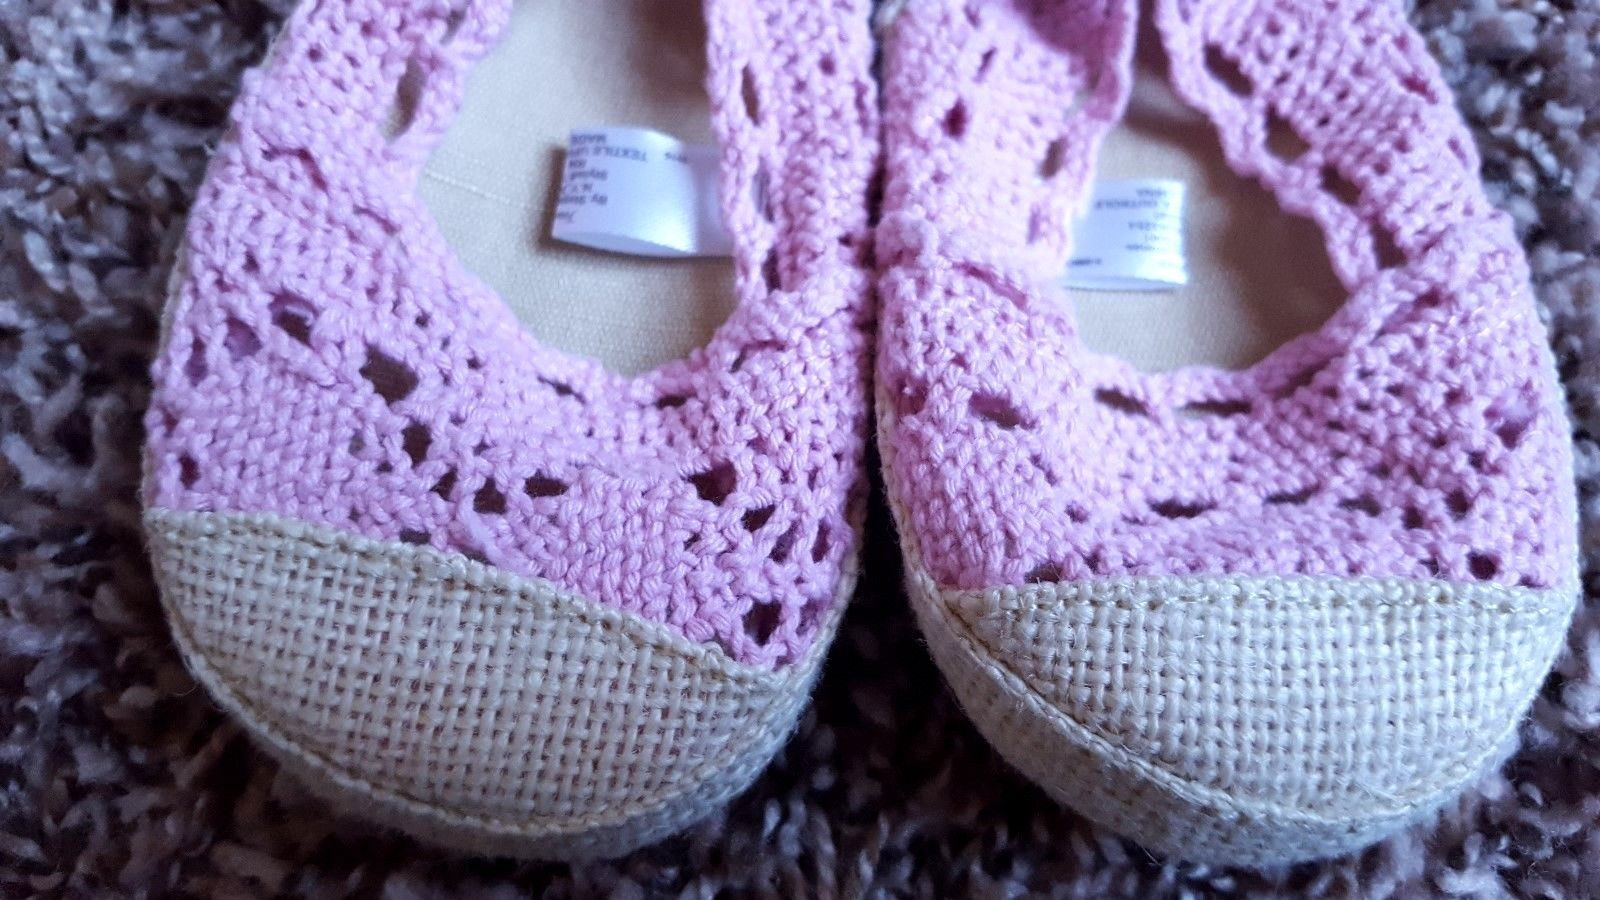 NWT Baby Girl's Size 3 First Steps Pink Crocheted Slip On Crib Shoes 6-9 Months